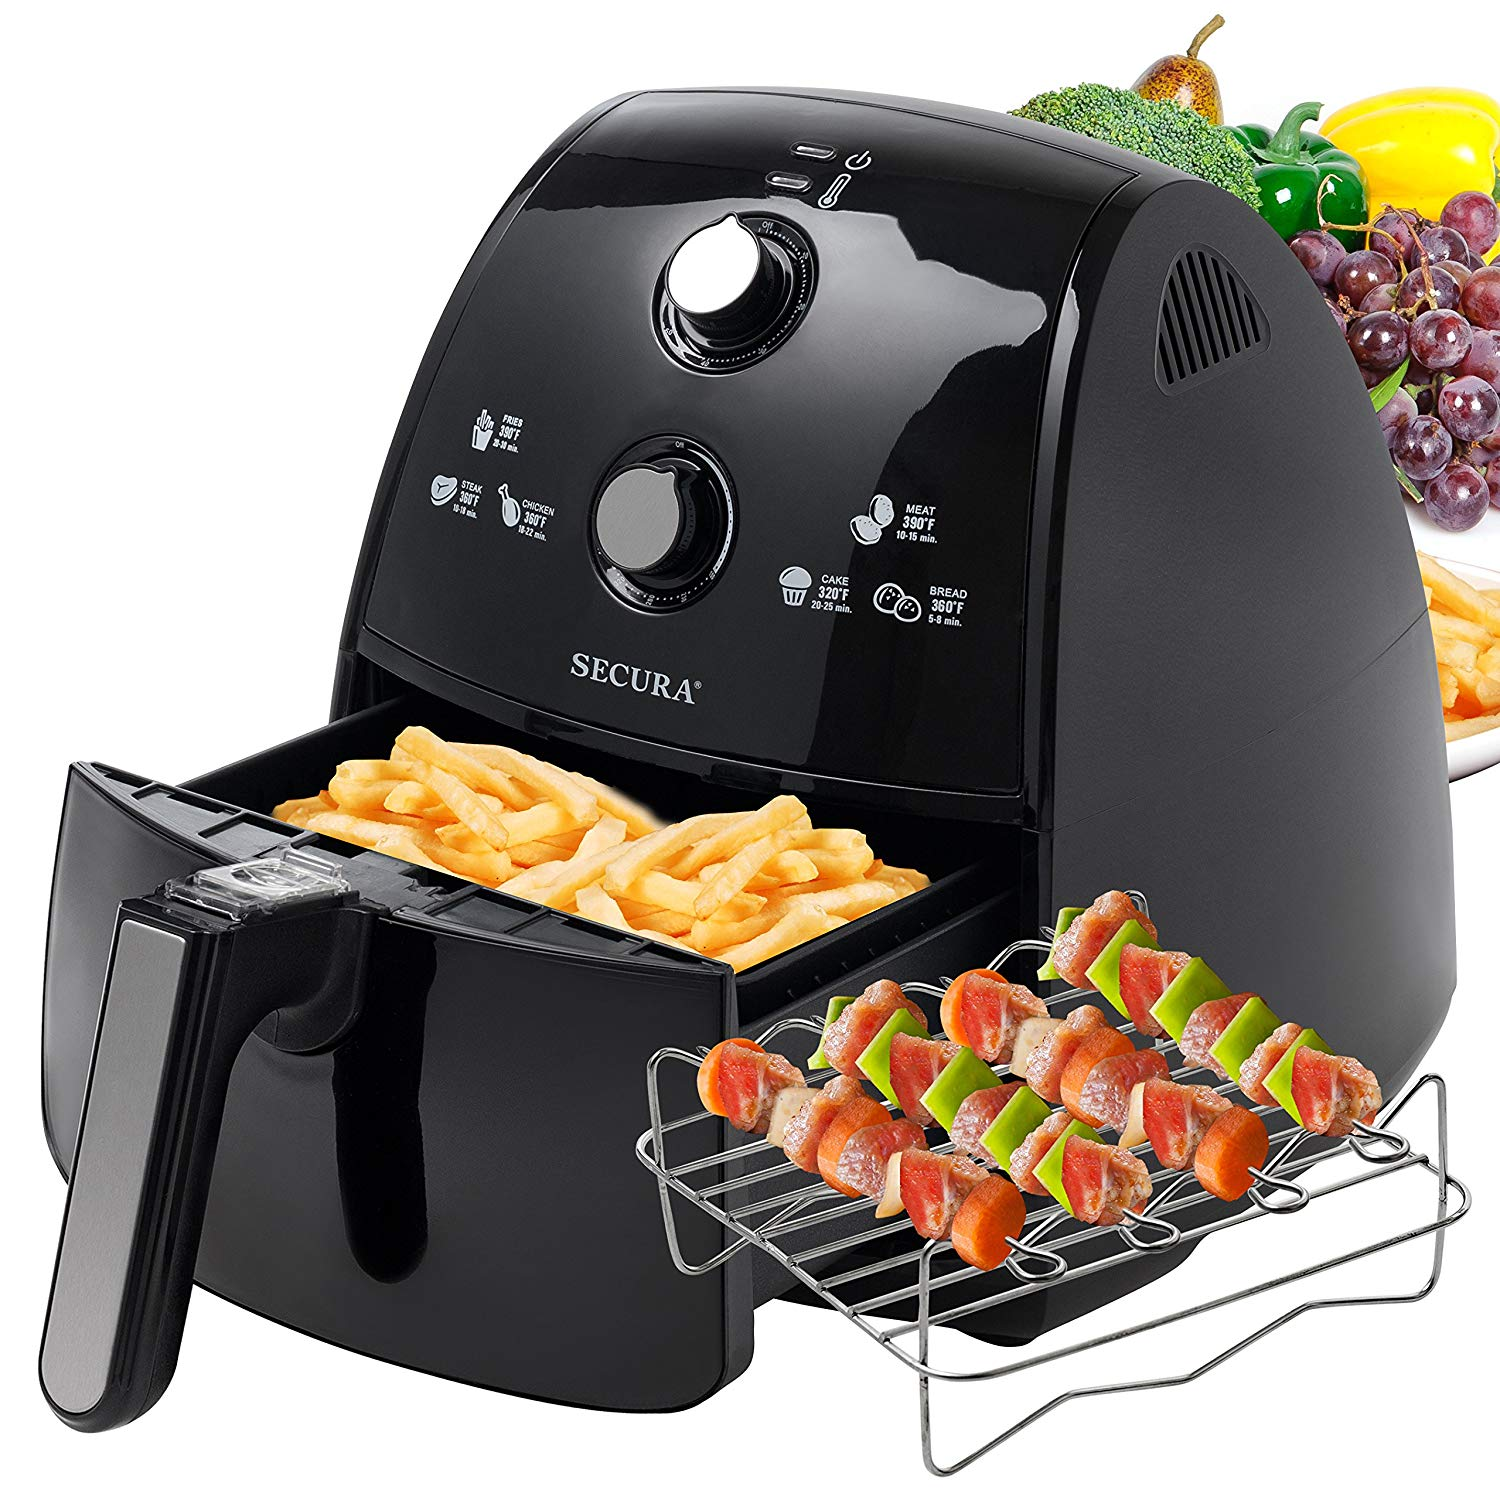 Top 5 Best Air Fryer For Family Of 4 In 2019 Review